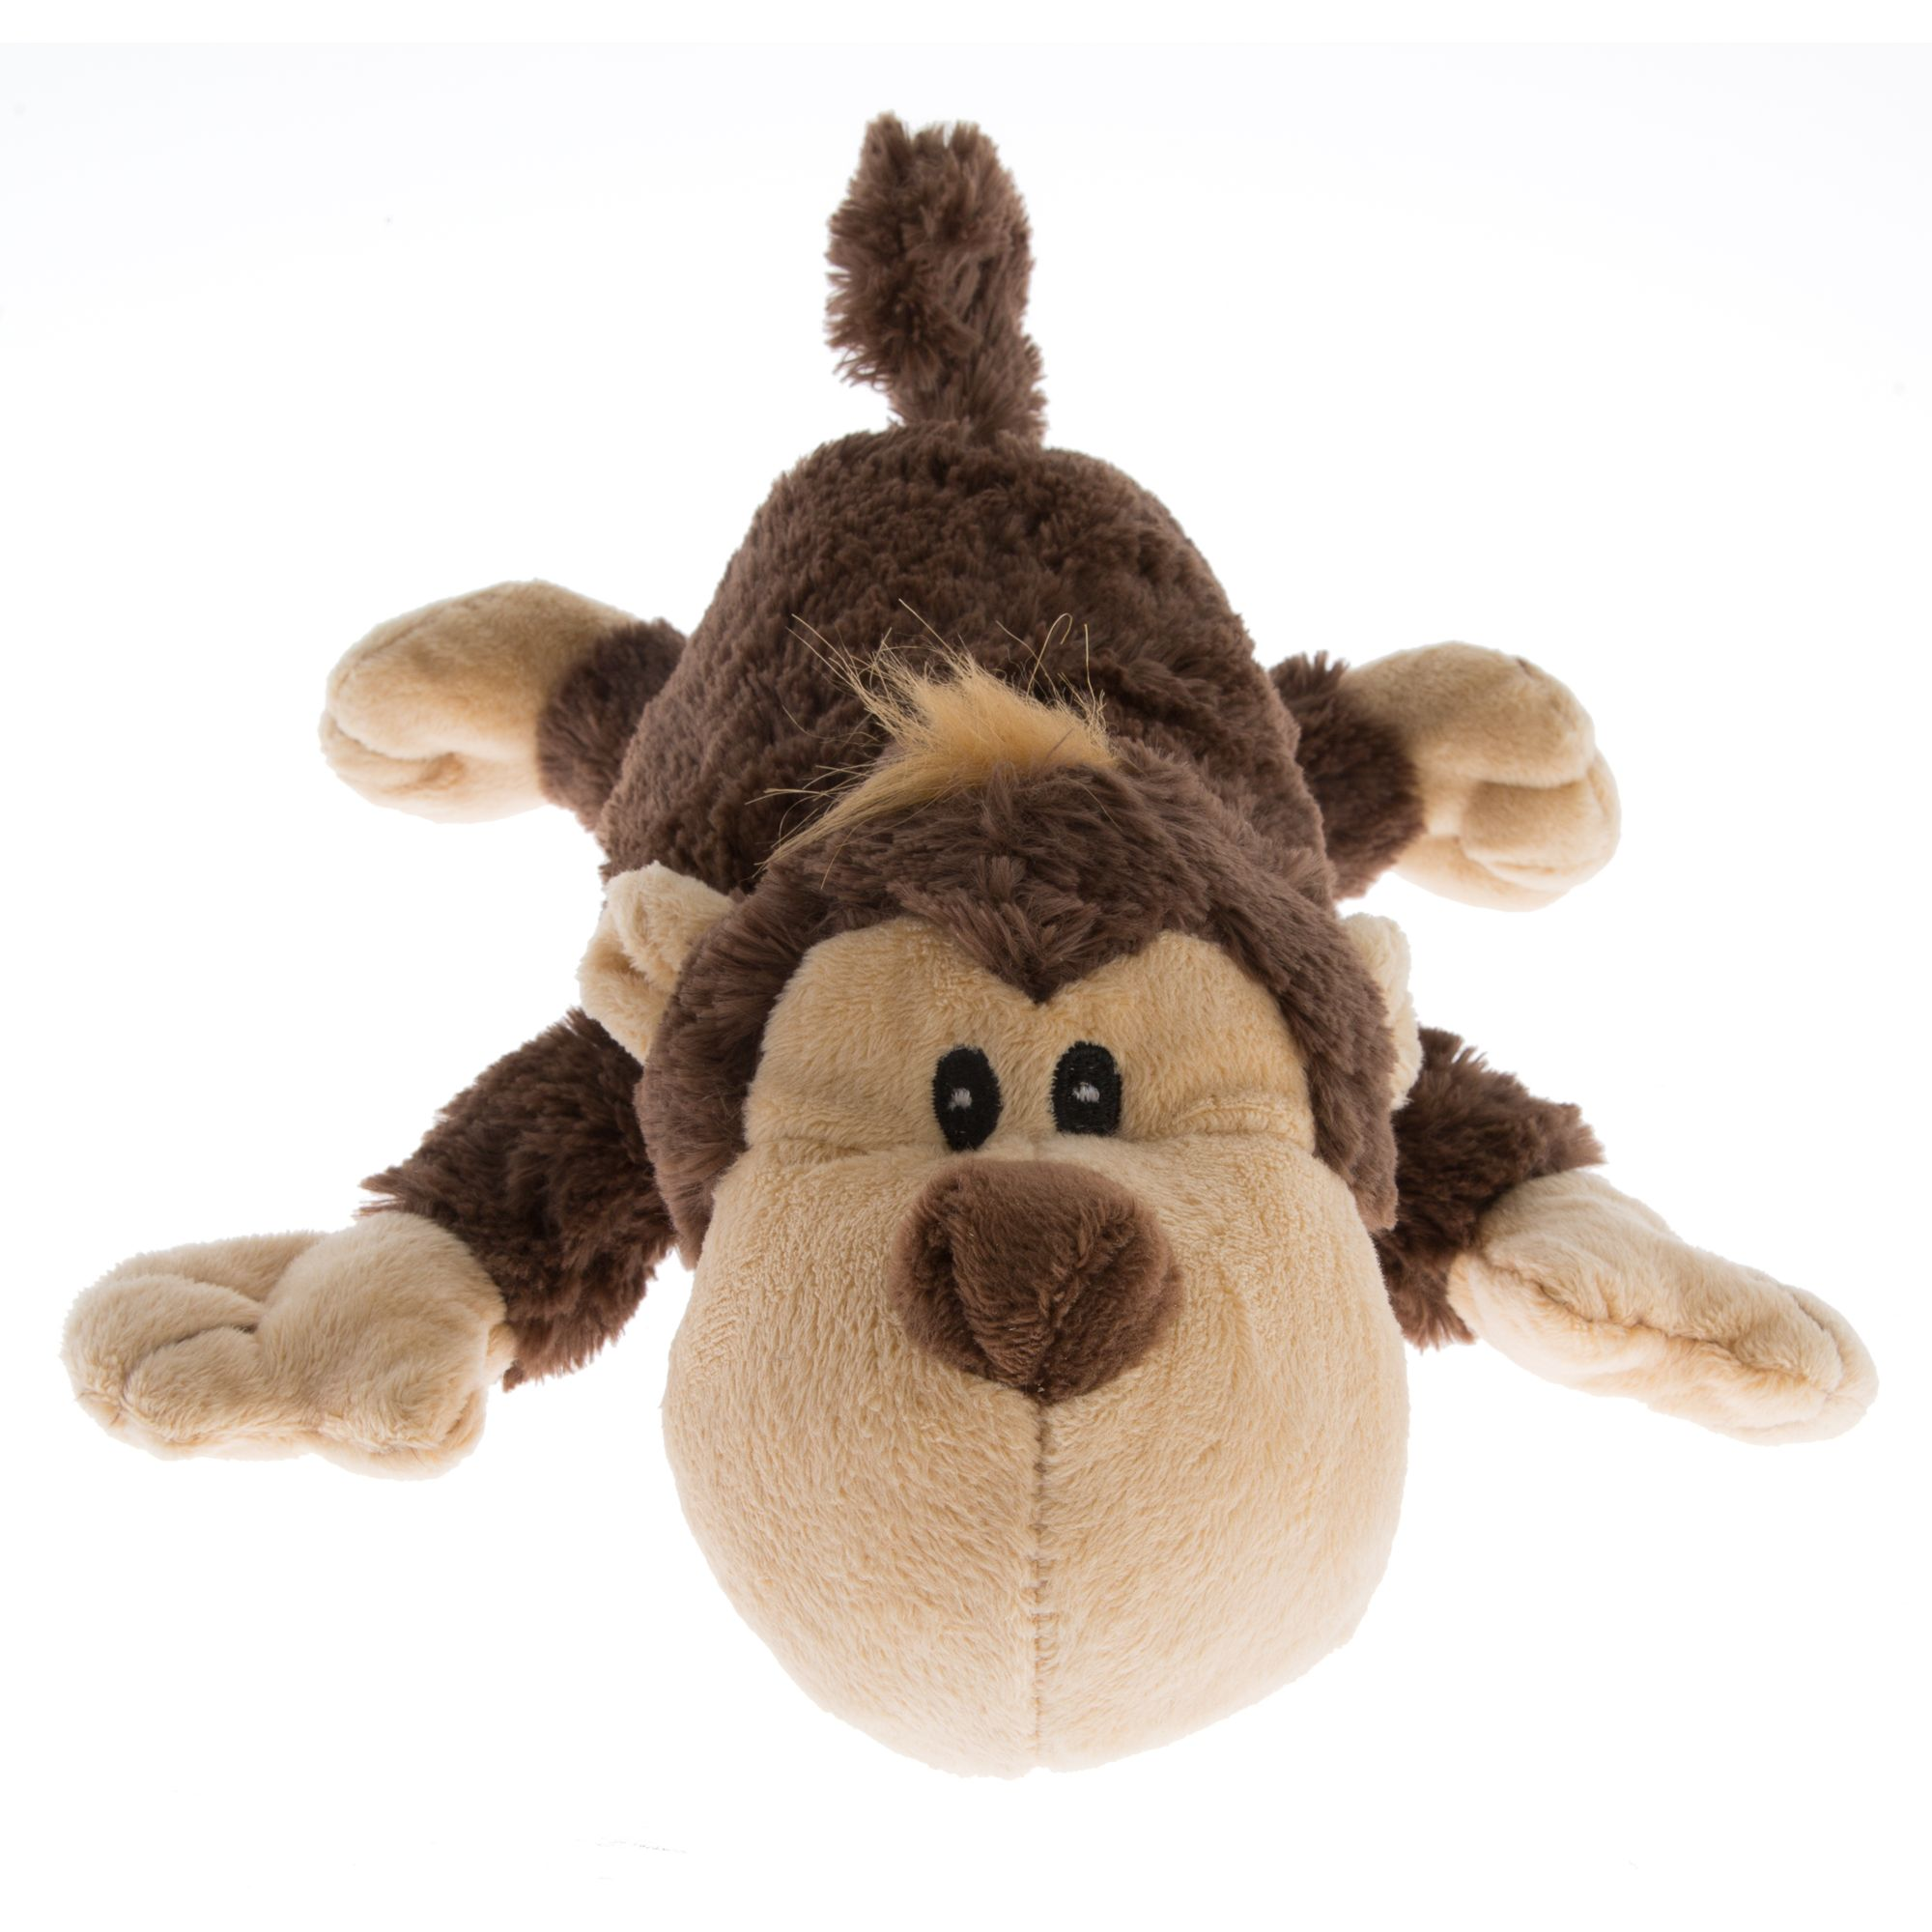 Kong Cozie Spunky Monkey Dog Toy 5171159